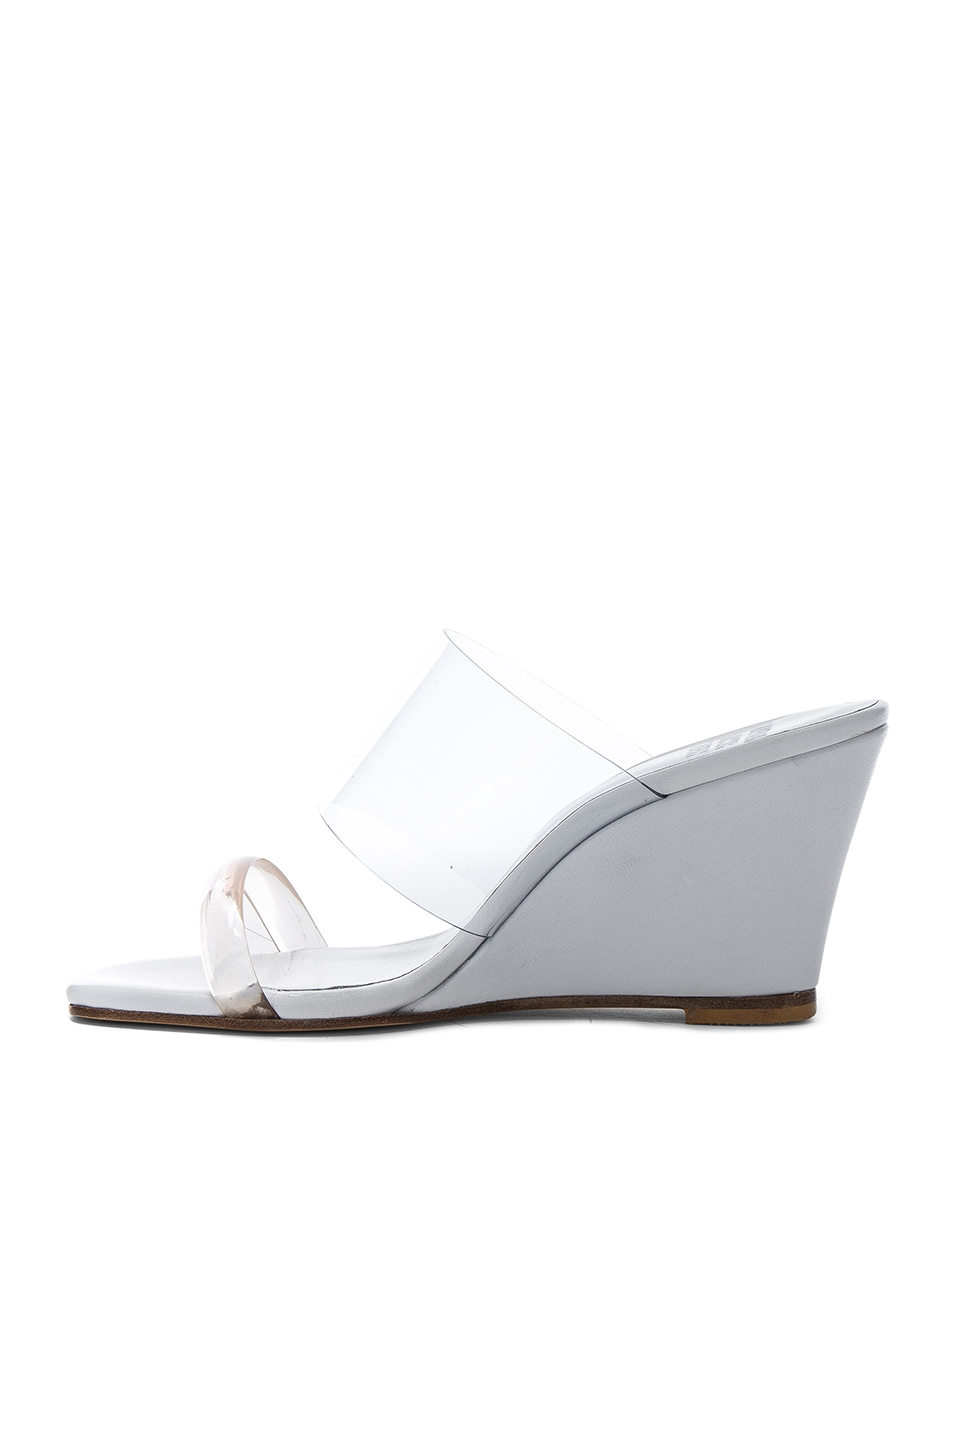 Image 5 of Maryam Nassir Zadeh PVC Olympia Wedges in White Calf & Clear Plastic